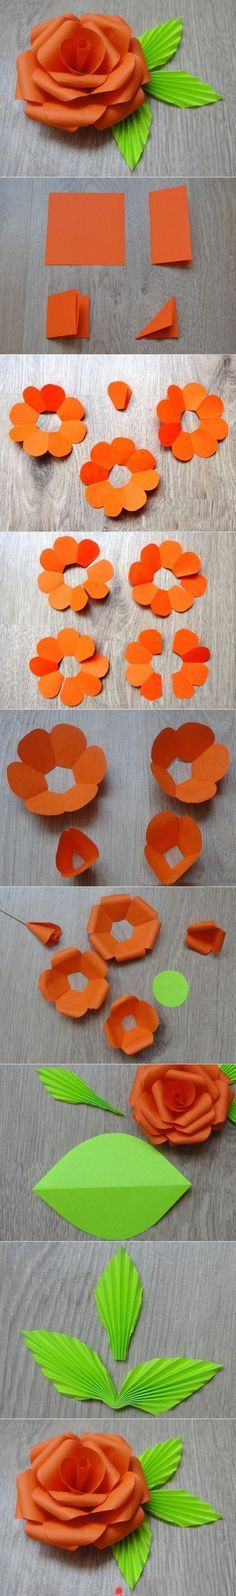 21-Extraordinary-Smart-DIY-Paper-Wall-Decor-That-Will-Color-Your-Life-homesthetics-design-16